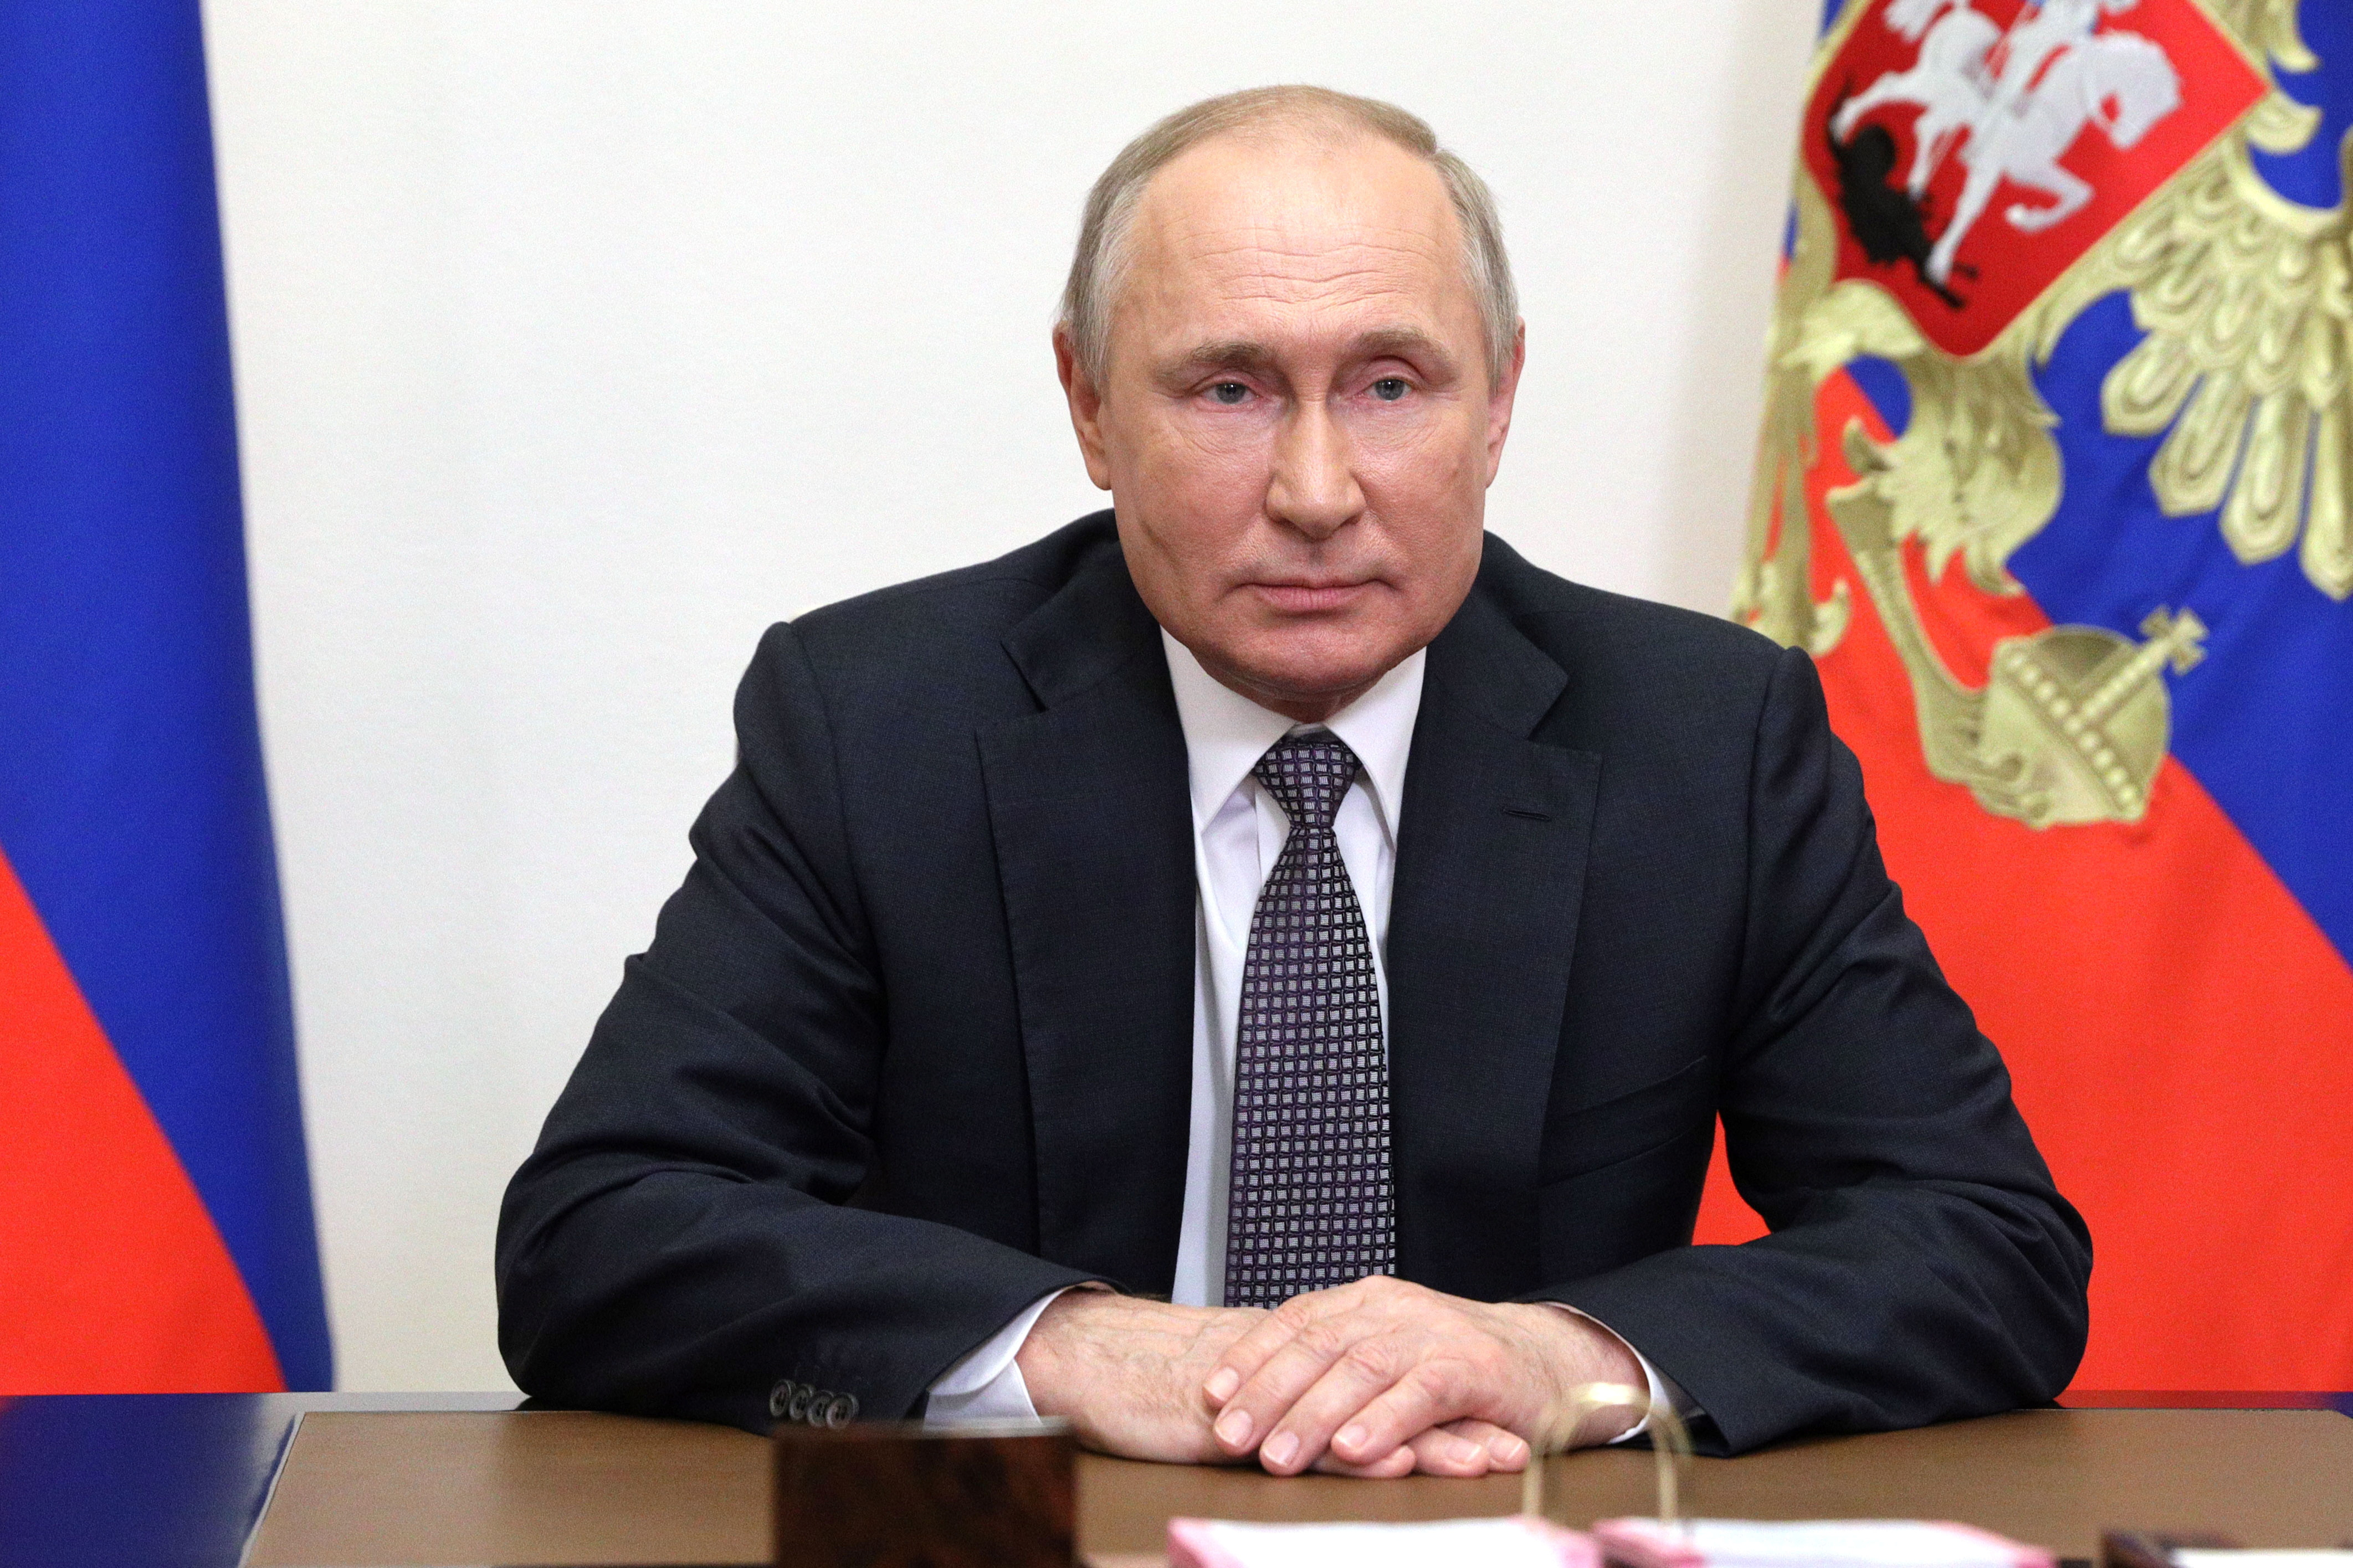 Russian President Vladimir Putin addresses participants of the IX Moscow Conference on International Security (MCIS) via video link at the Novo-Ogaryovo state residence outside Moscow, Russia June 23, 2021. Sputnik/Sergey Ilyin/Kremlin via REUTERS